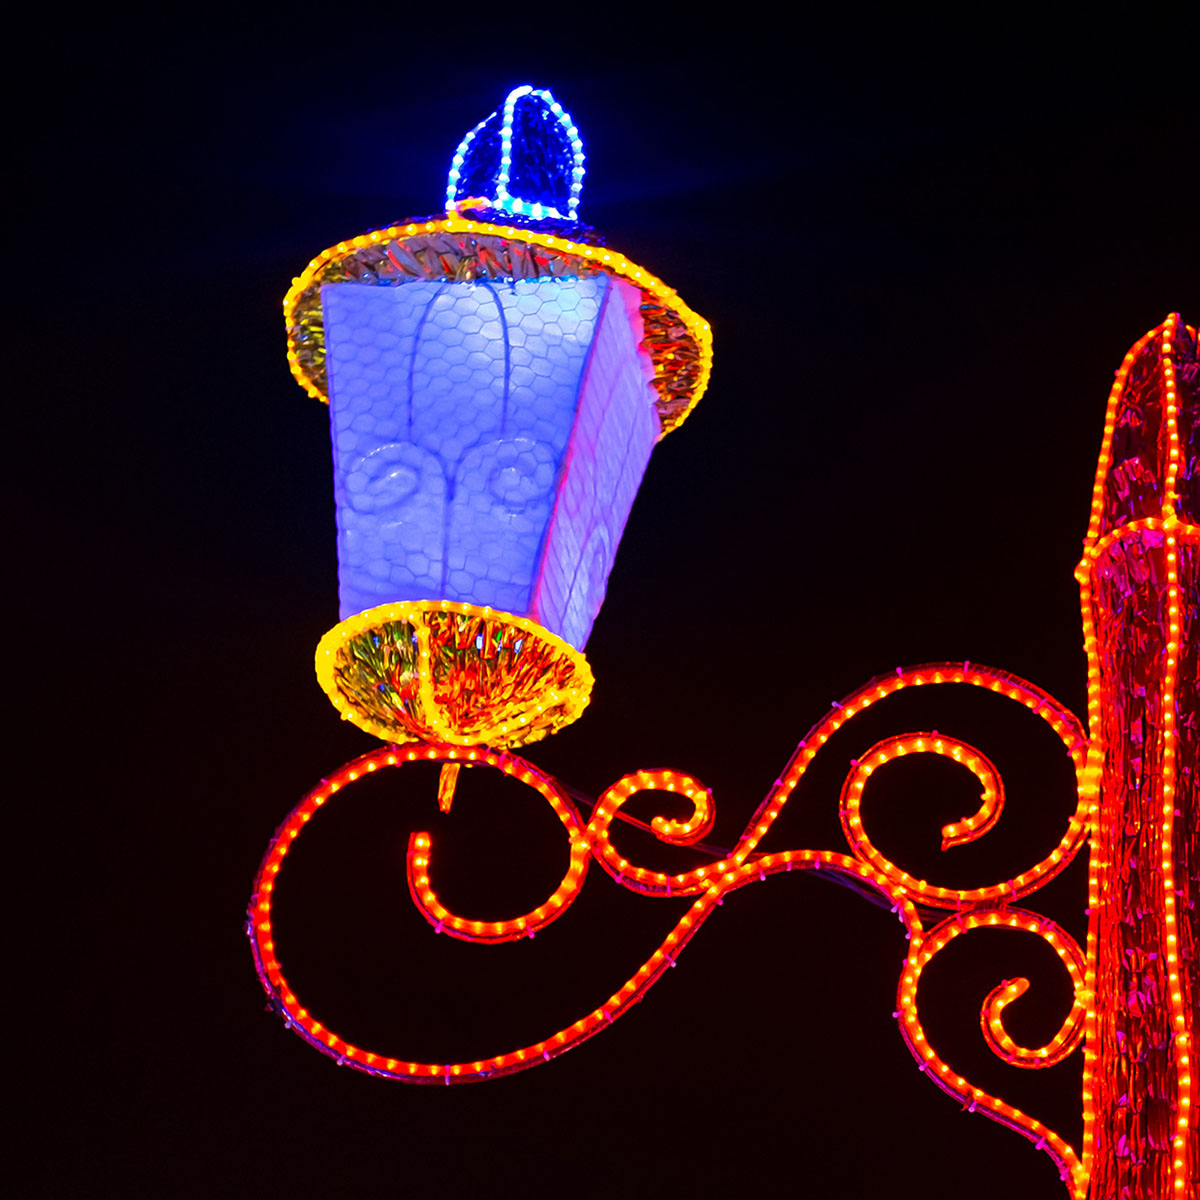 Street Lamp Decorated With Rope Light